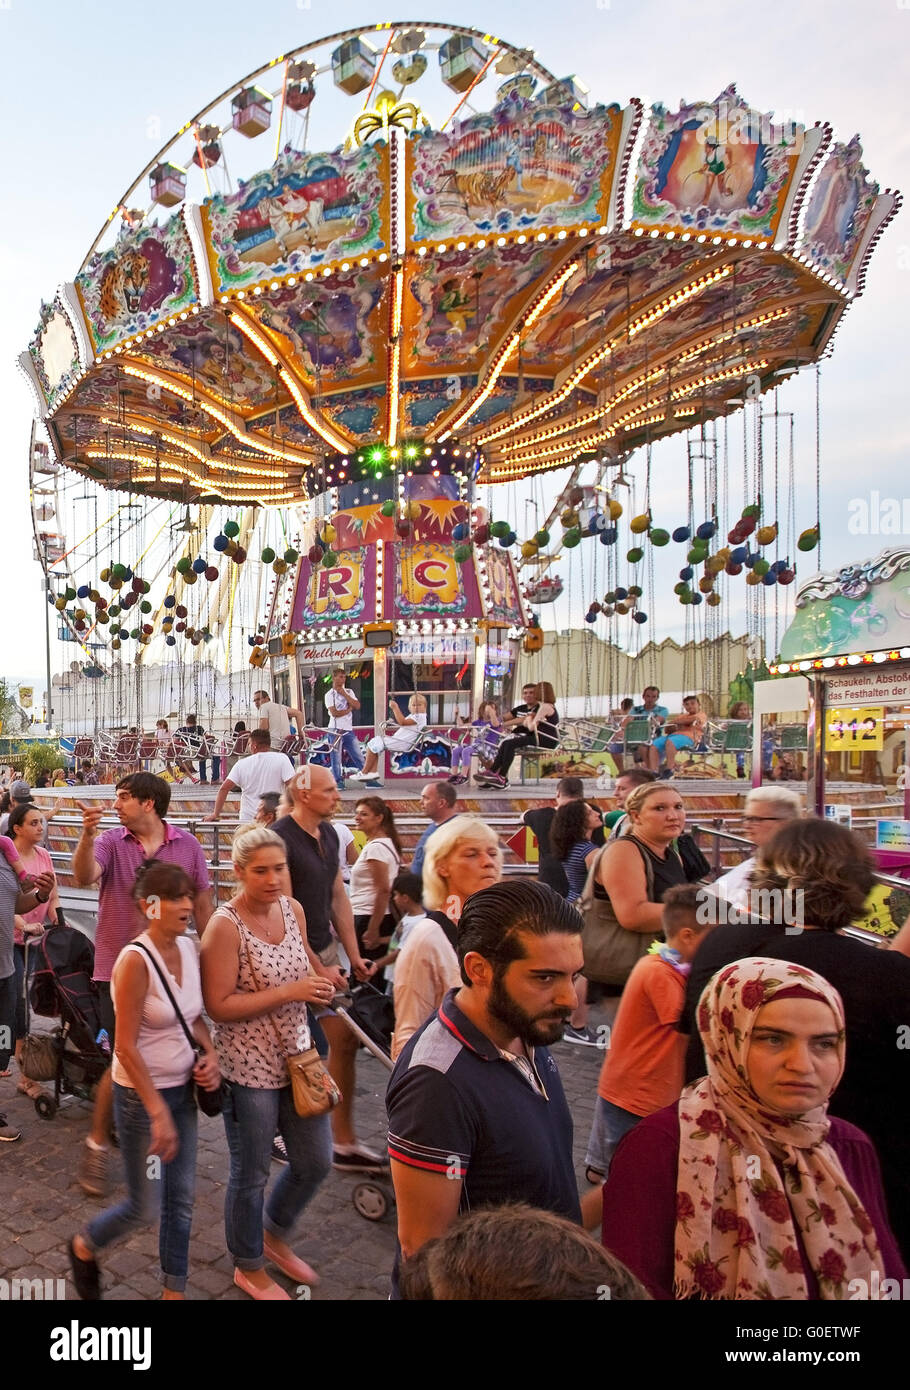 Many People at Cranger Kirmes fair, Herne, Germany - Stock Image